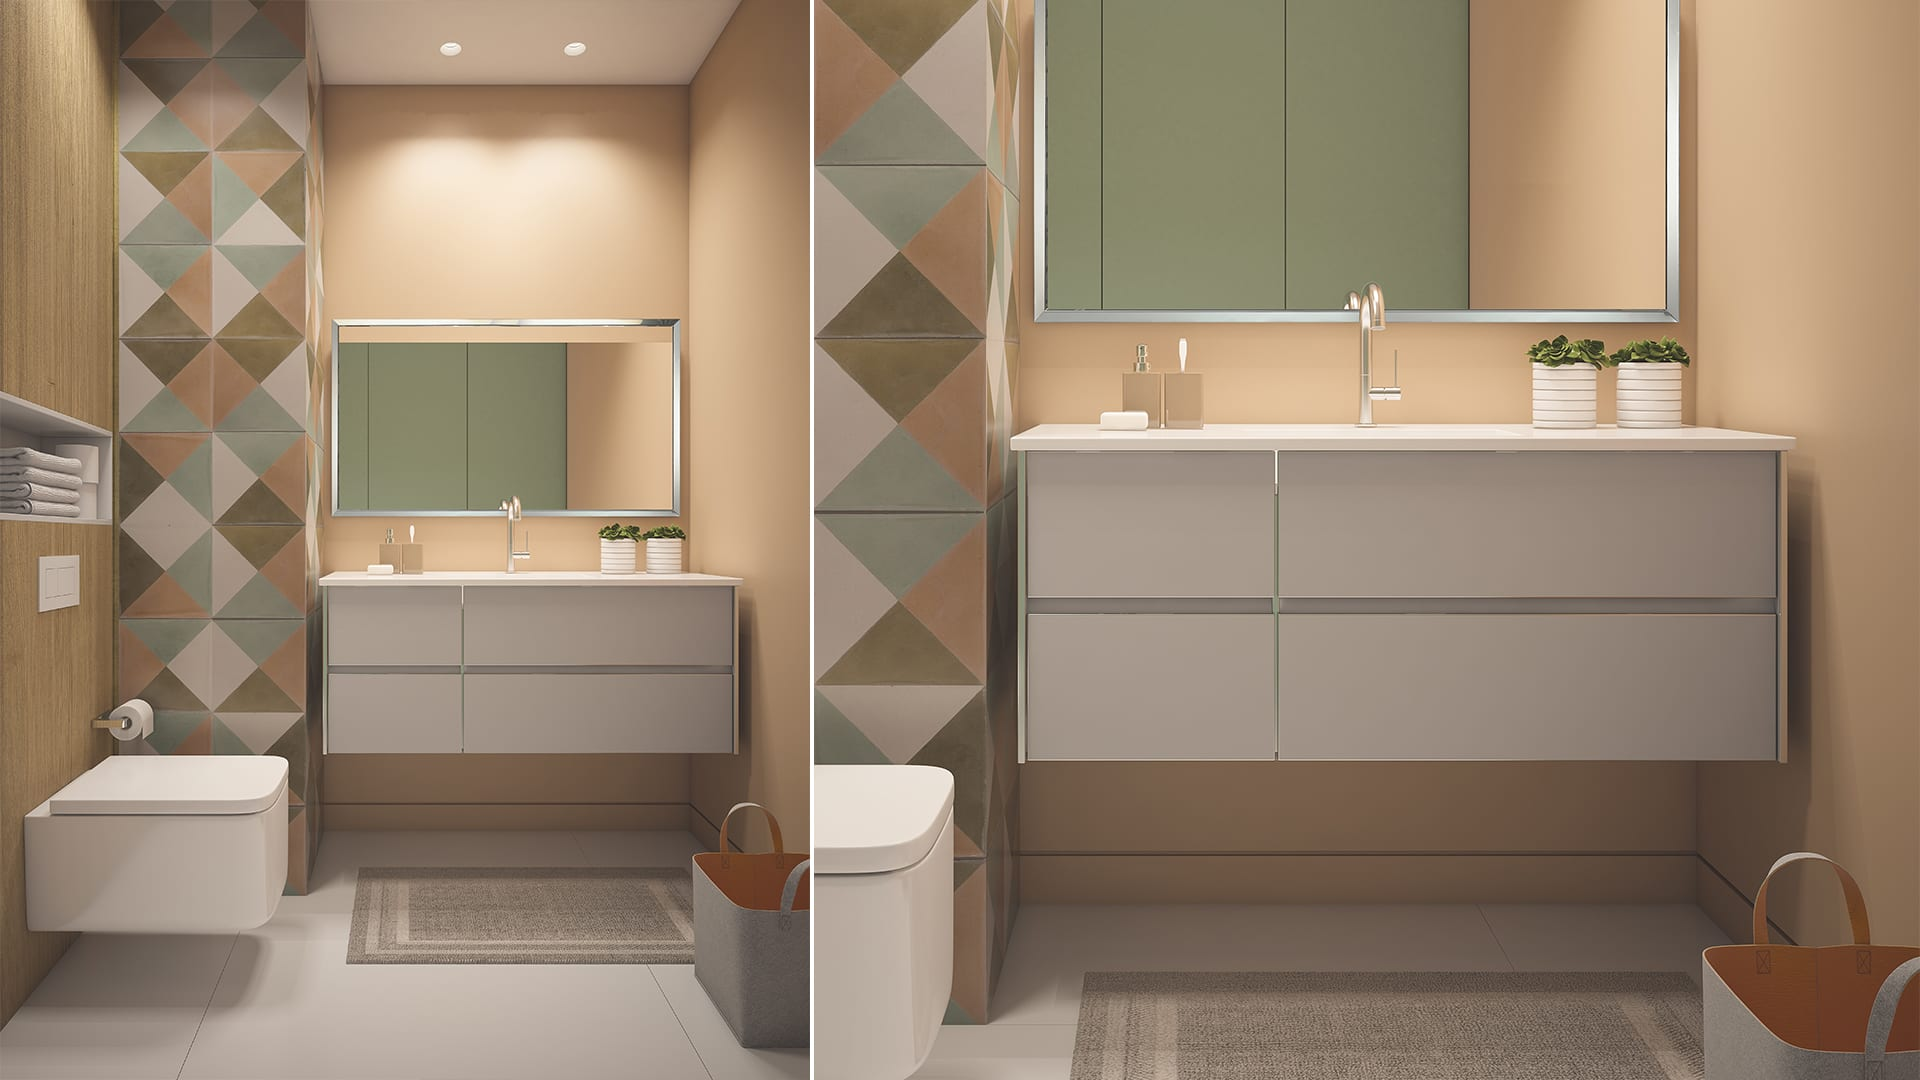 Maayan-Golan_Architectural-Visualization_product-visualization_ Bathroom-cabinets_ company-Ambin-Systems_05